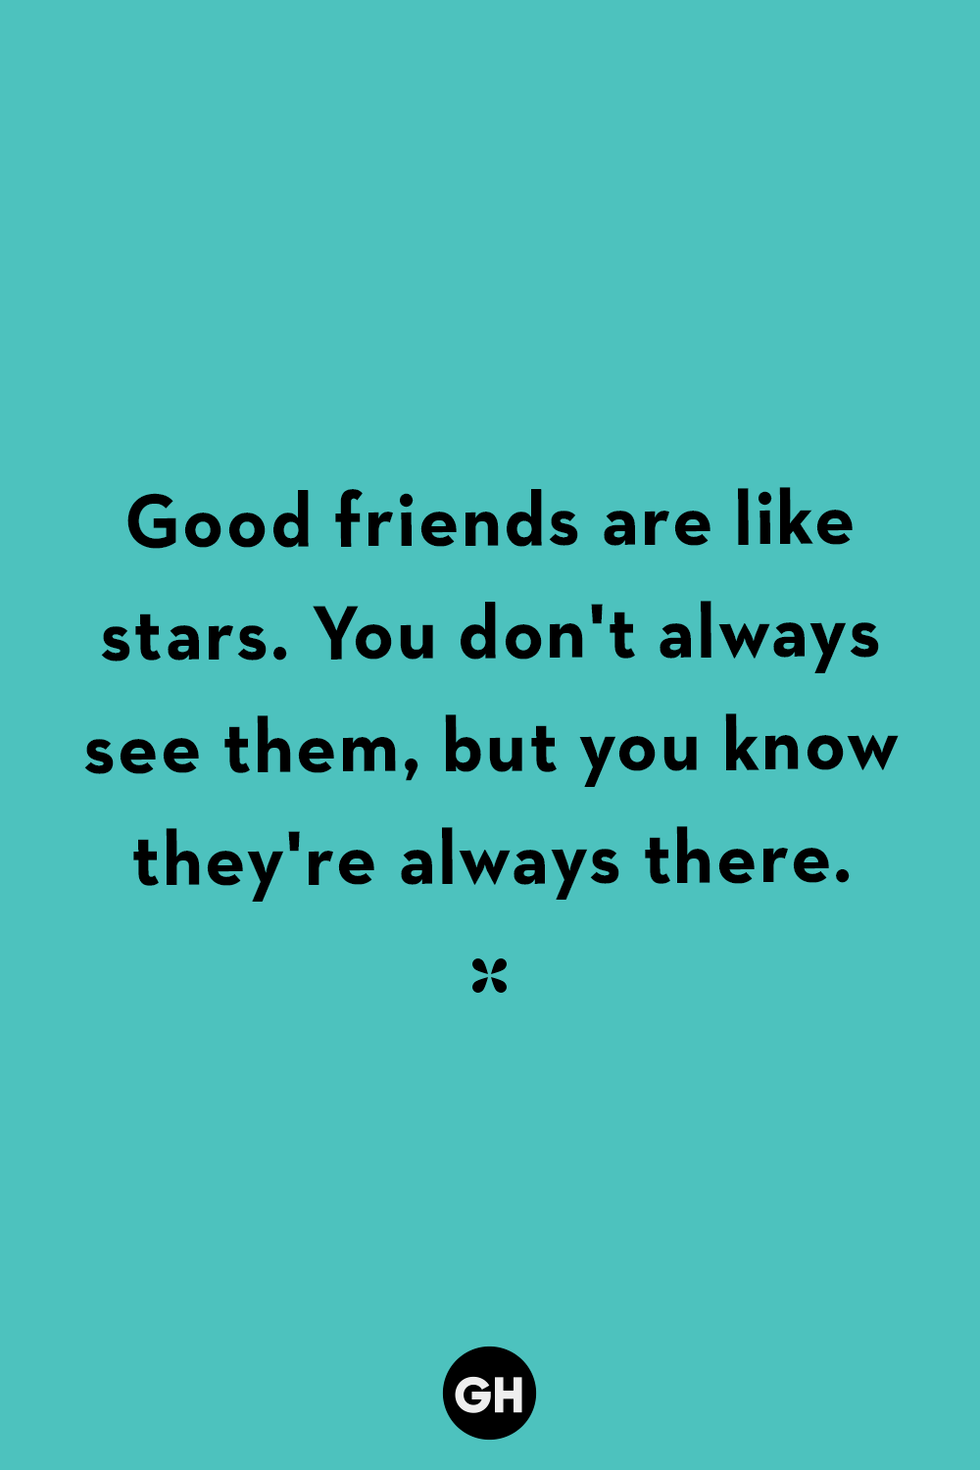 40 Friendship Quotes To Share With Your Besties Friends Quotes Friendship Day Quotes Short Friendship Quotes